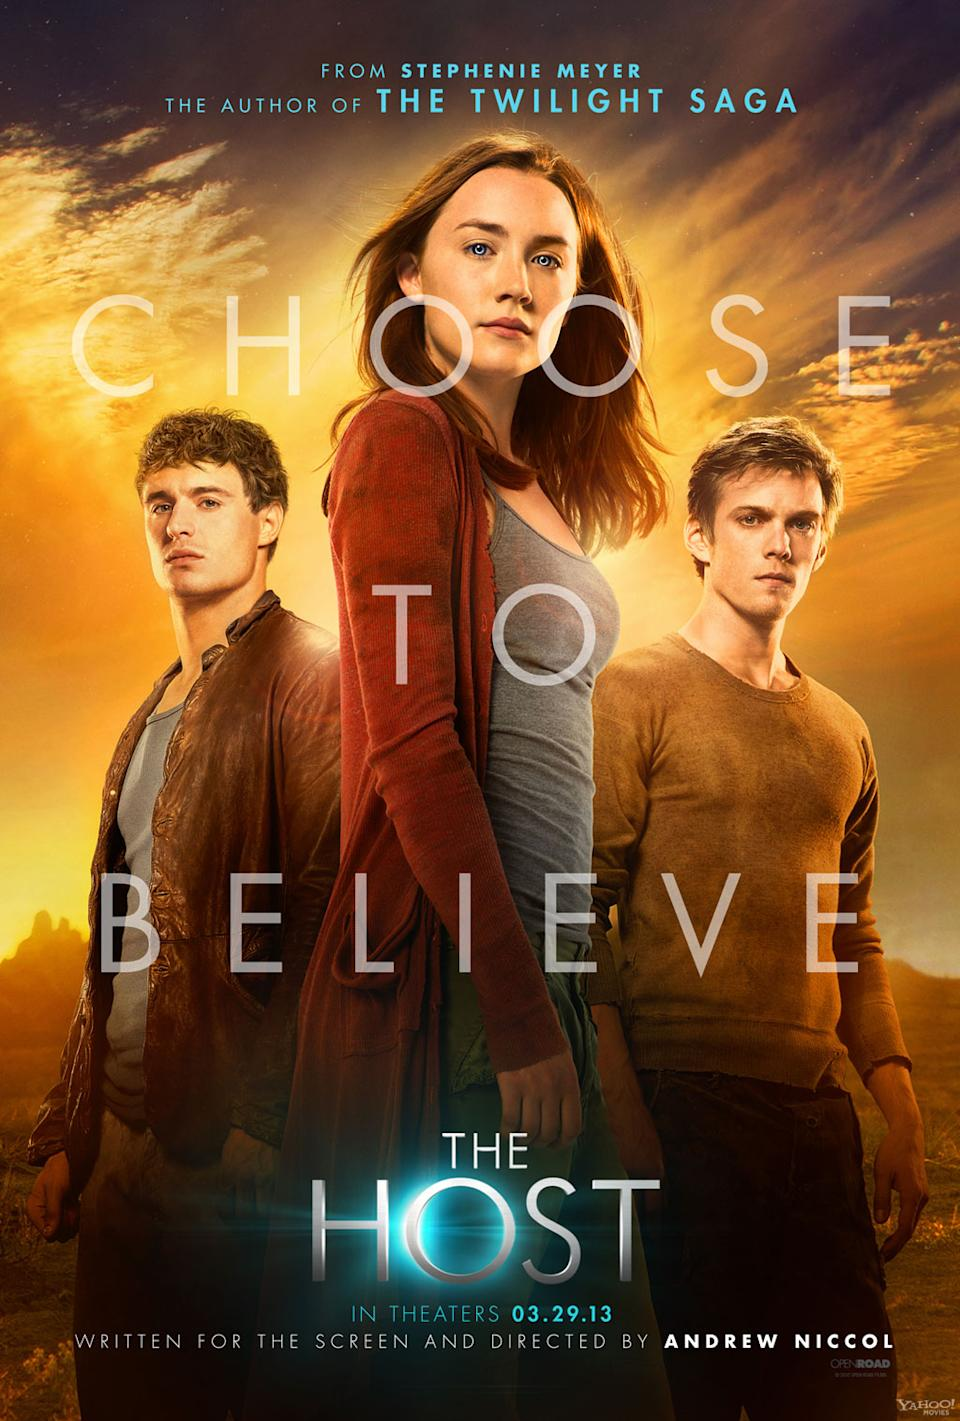 "Max Irons is Jared Howe, Saoirse Ronan is Melanie Stryder, and Jake Abel is Ian O'Shea and in Open Road Films' ""The Host"" - 2013<br> <a href=""http://l.yimg.com/os/251/2013/01/04/HOST-banner-panel-B1-02-jpg_163055.jpg"" rel=""nofollow noopener"" target=""_blank"" data-ylk=""slk:View full size >>"" class=""link rapid-noclick-resp"">View full size >></a>"